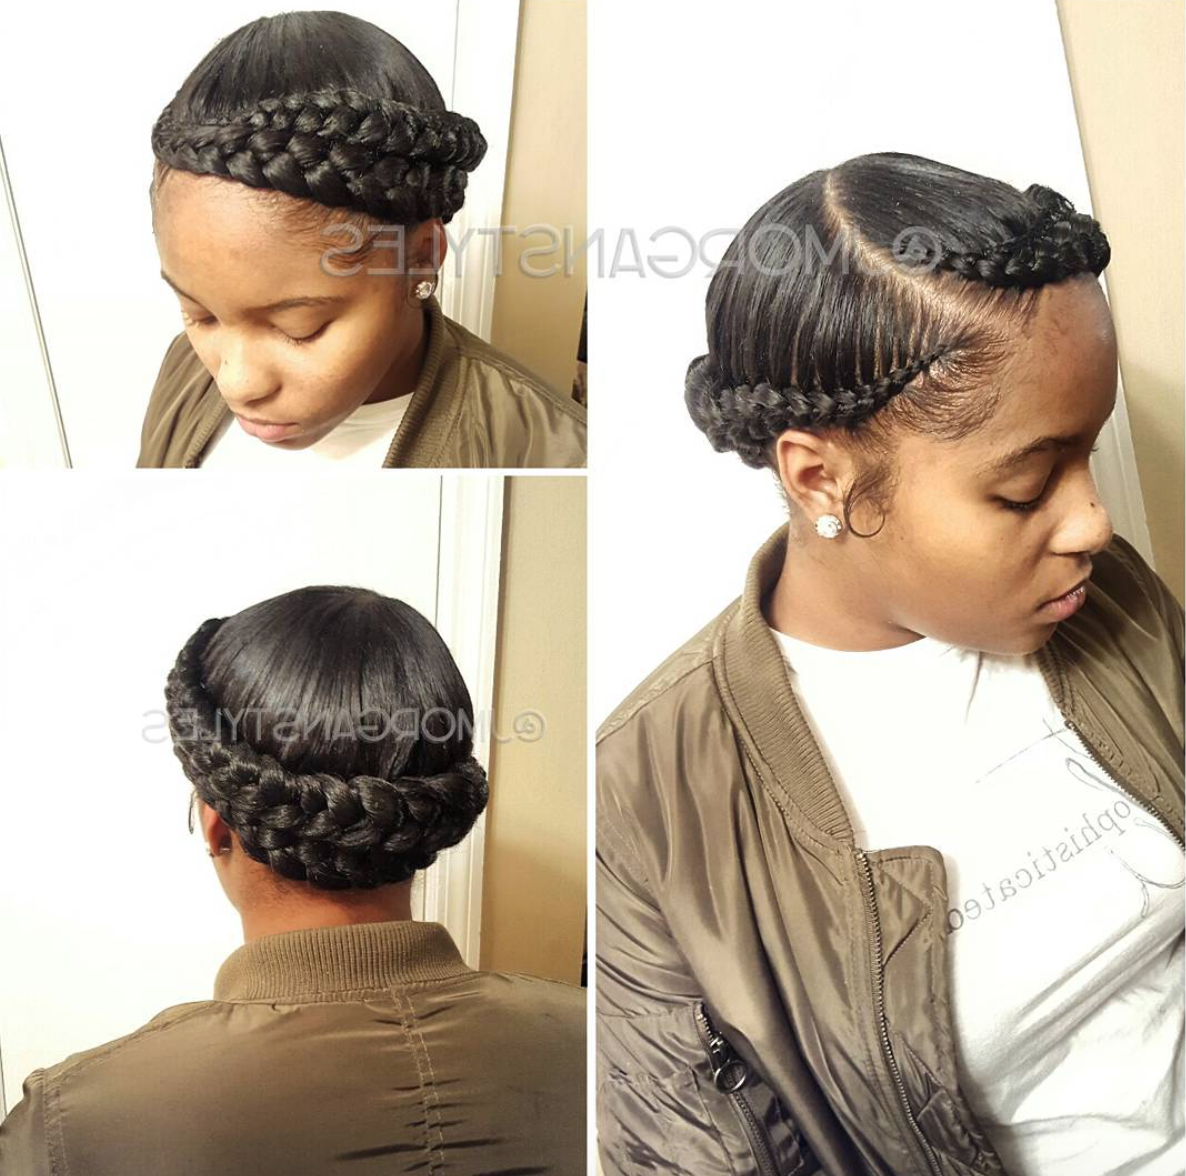 Ways To Make Your Hair Grow Fast Even If It Is Damaged Within Most Popular No Pin Halo Braided Hairstyles (Gallery 1 of 20)